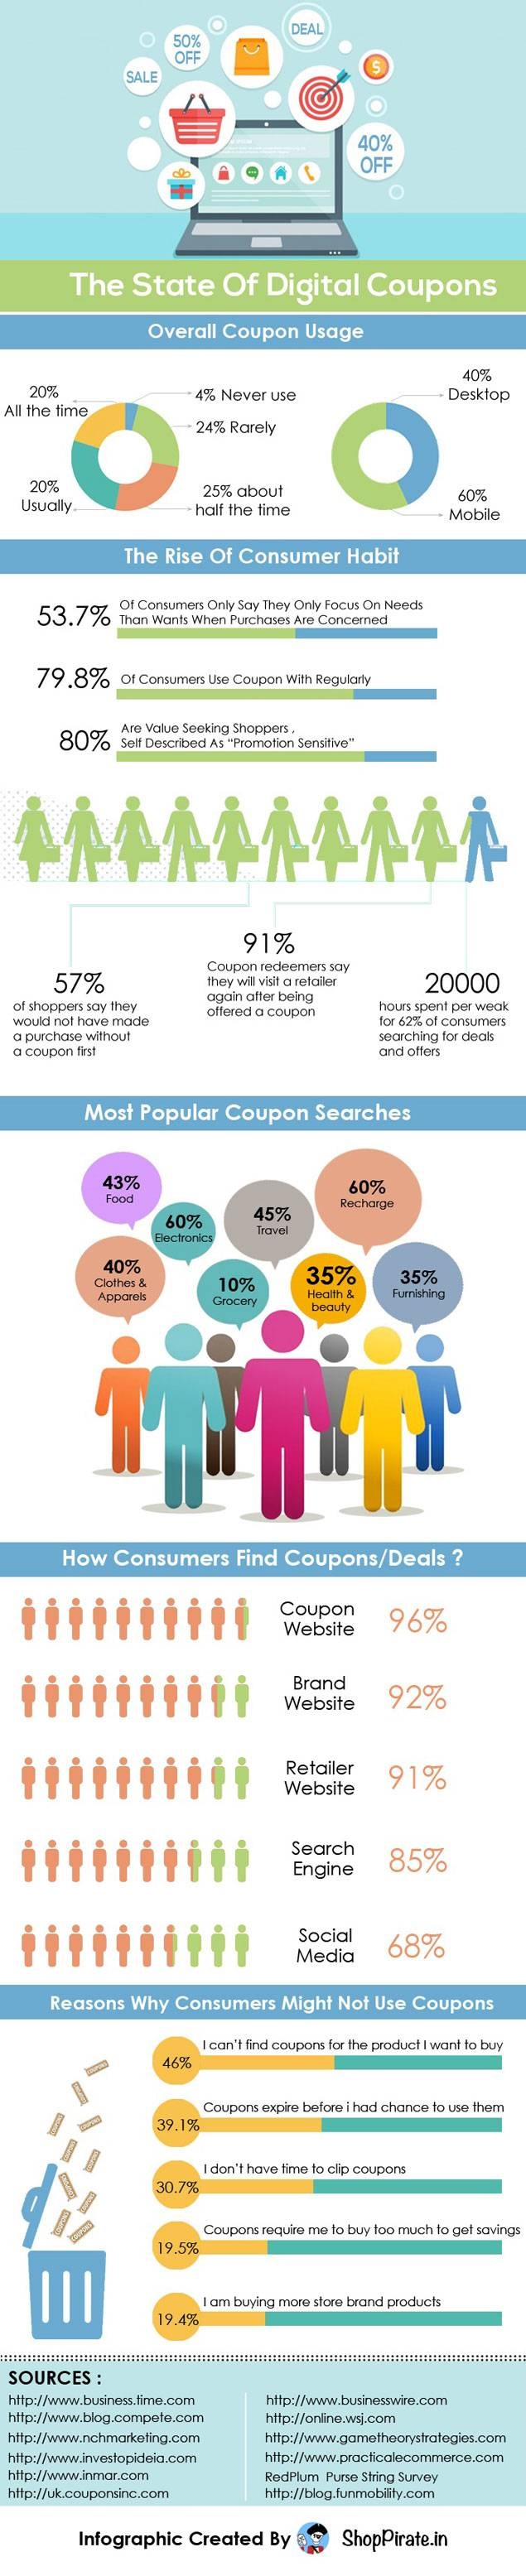 http://retail.economictimes.indiatimes.com/news/industry/electronics-and-food-coupons-are-most-searched-for-infographic/50354006